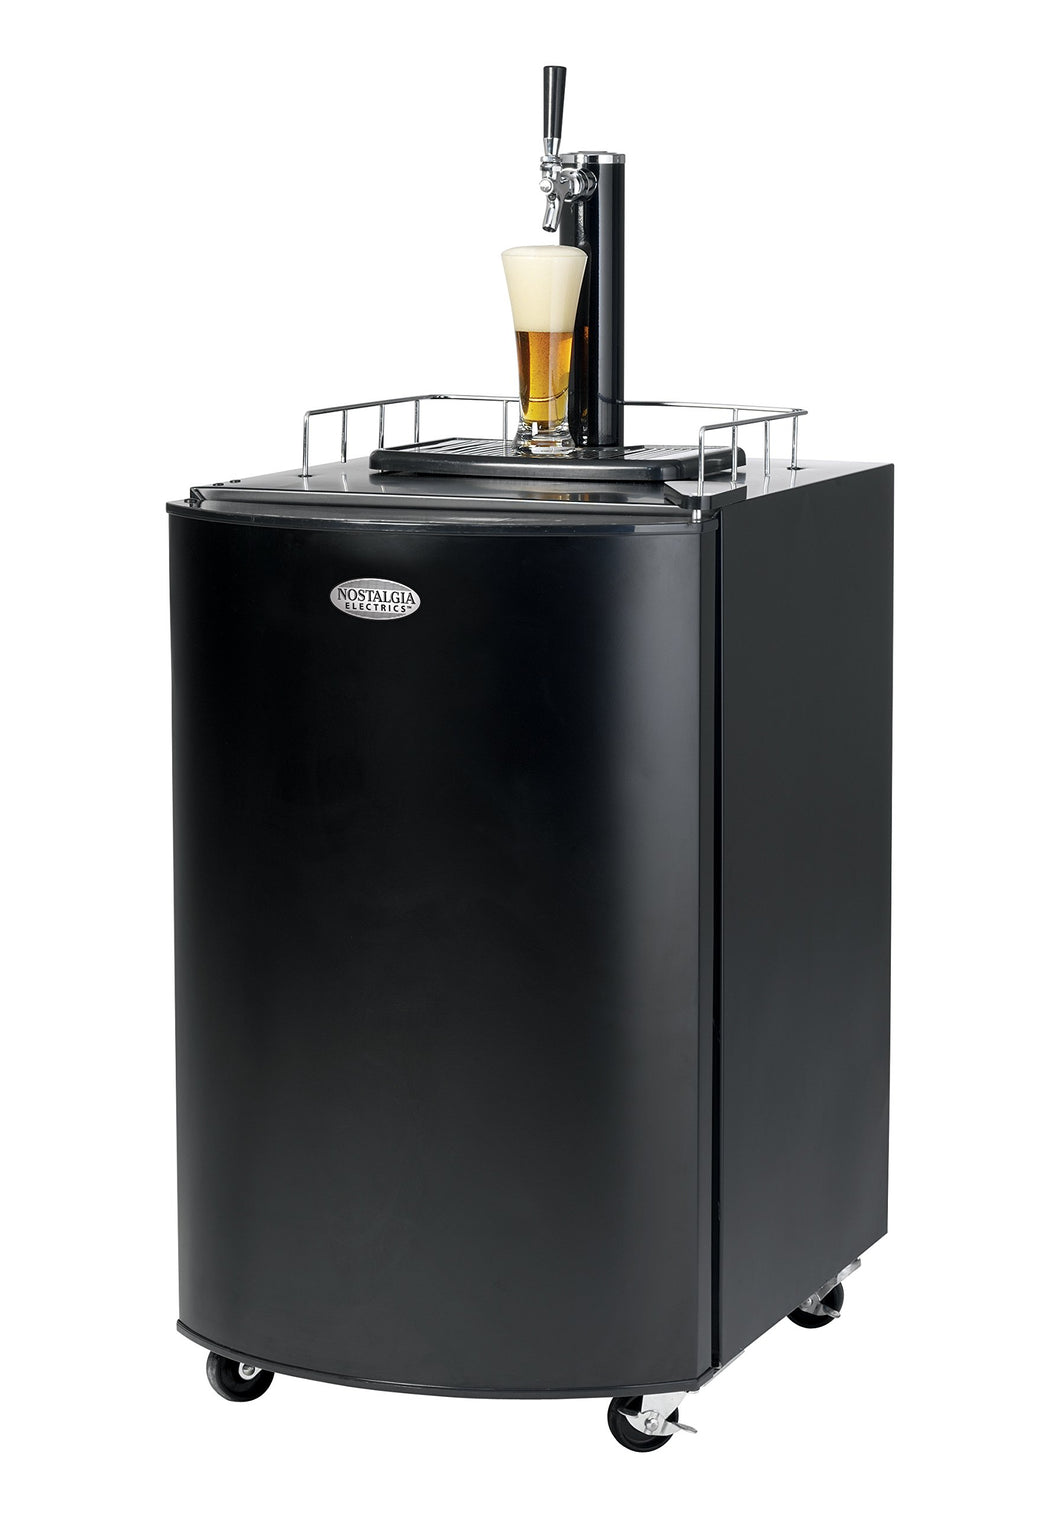 Nostalgia KRS2100 5.1 Cu.Ft. Full Size Kegorator Draft Beer Dispenser